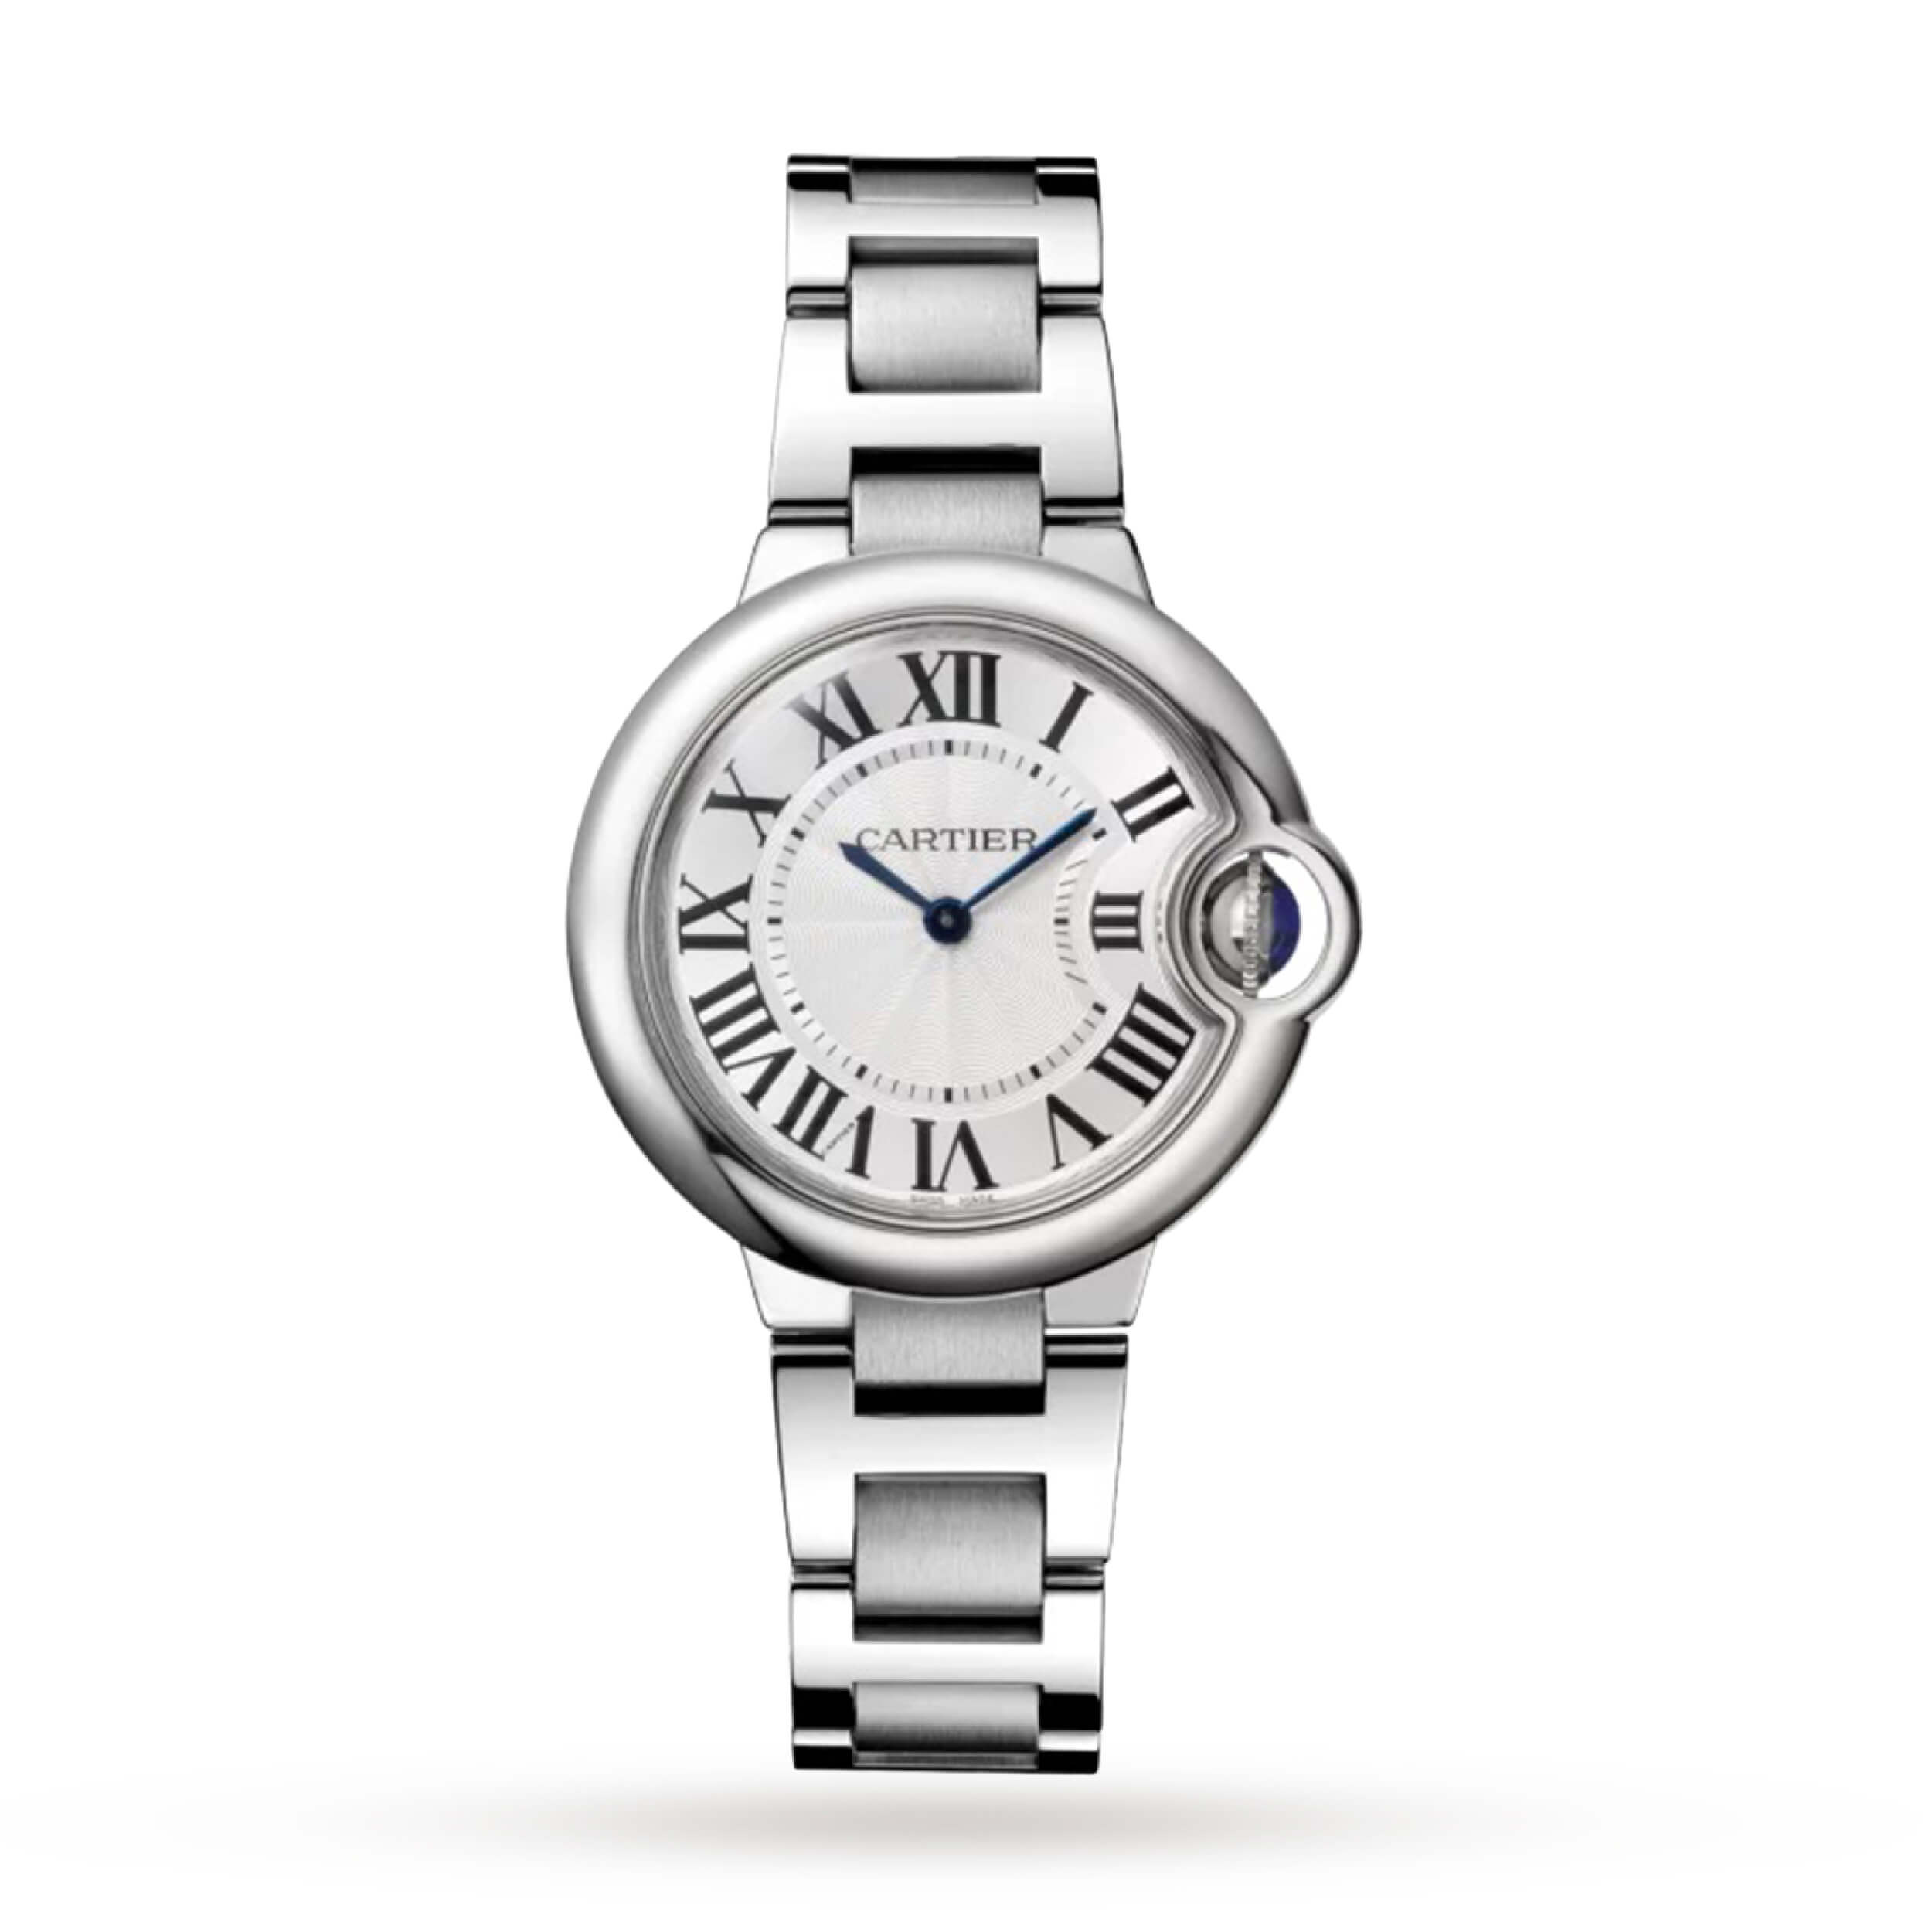 Ballon Bleu De Cartier | Best Luxury Watches for Women